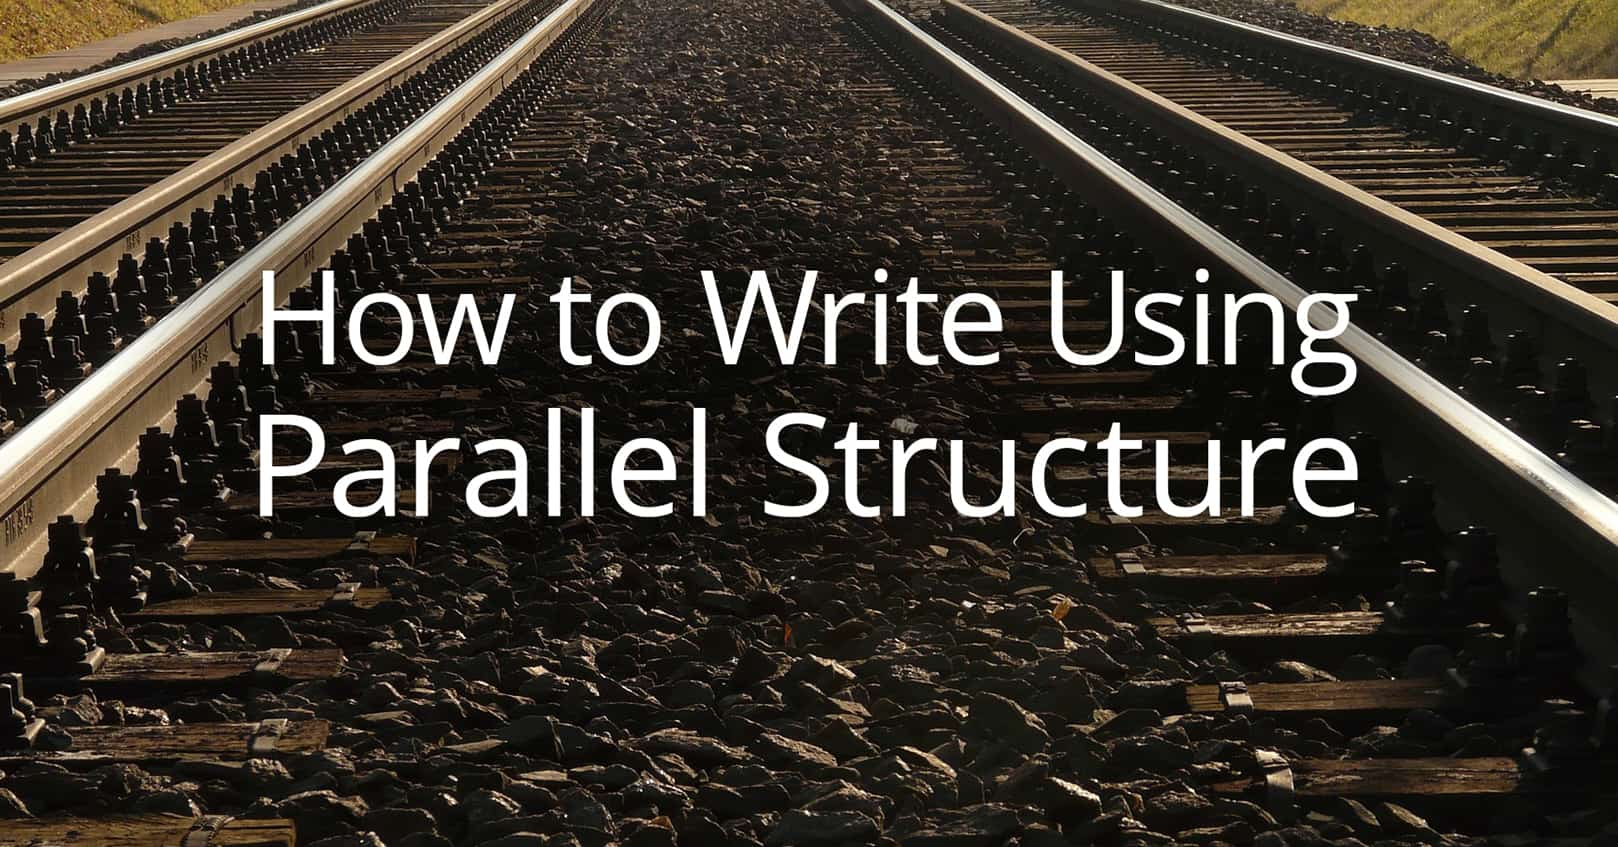 write using parallel structure